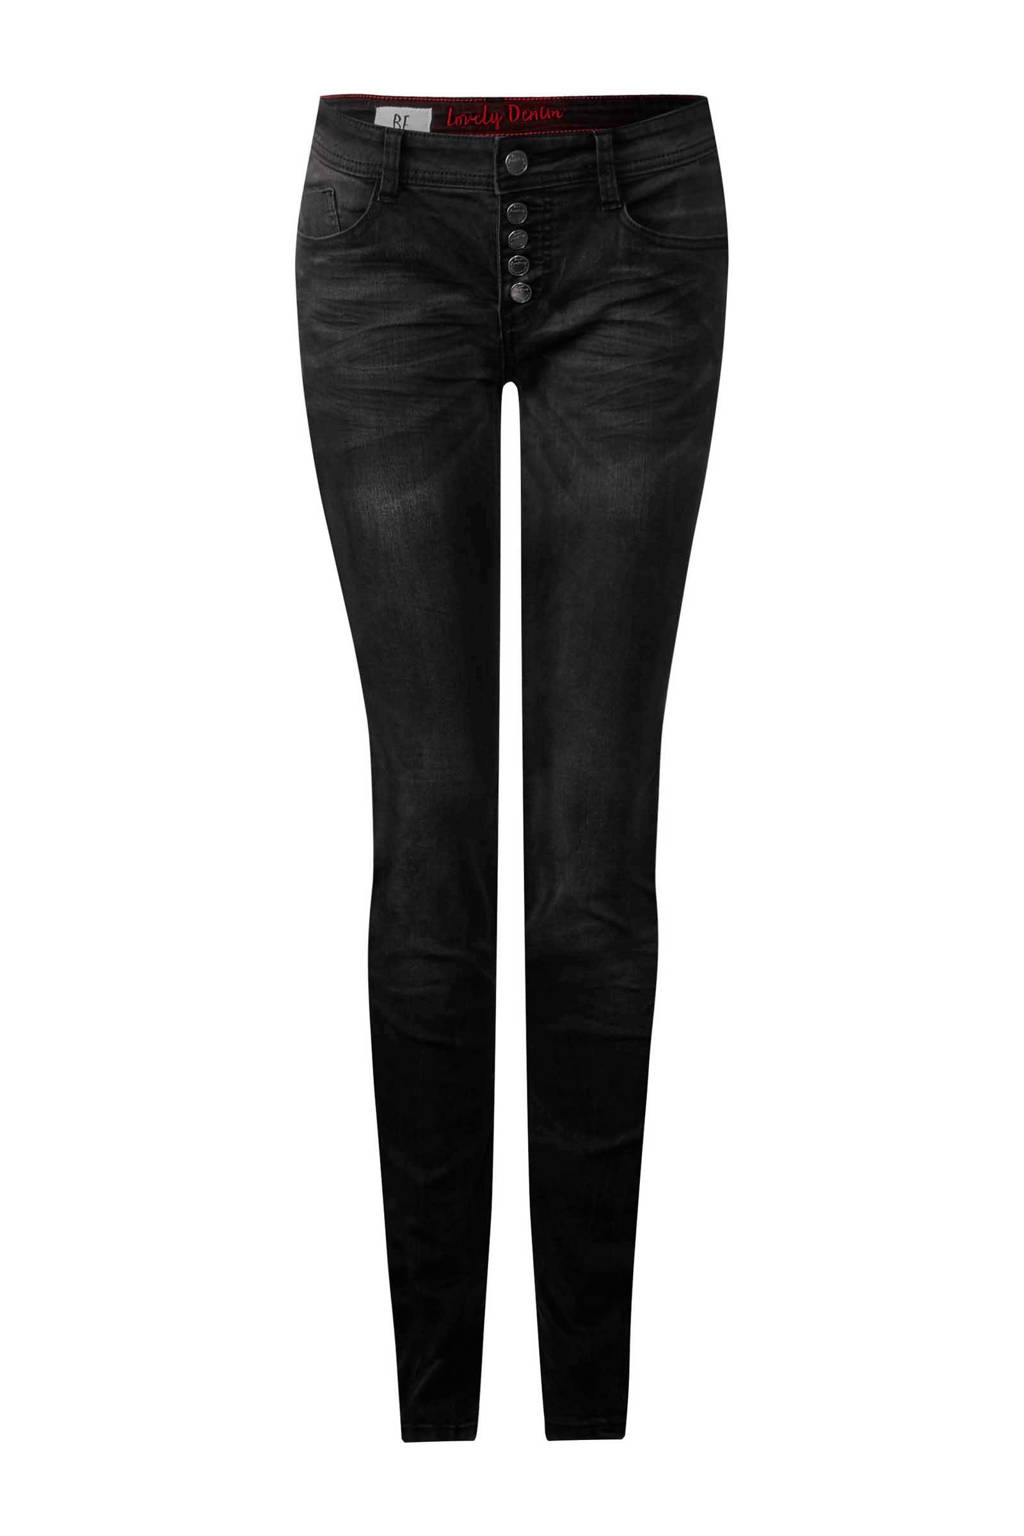 Street One slim fit broek York, Zwart